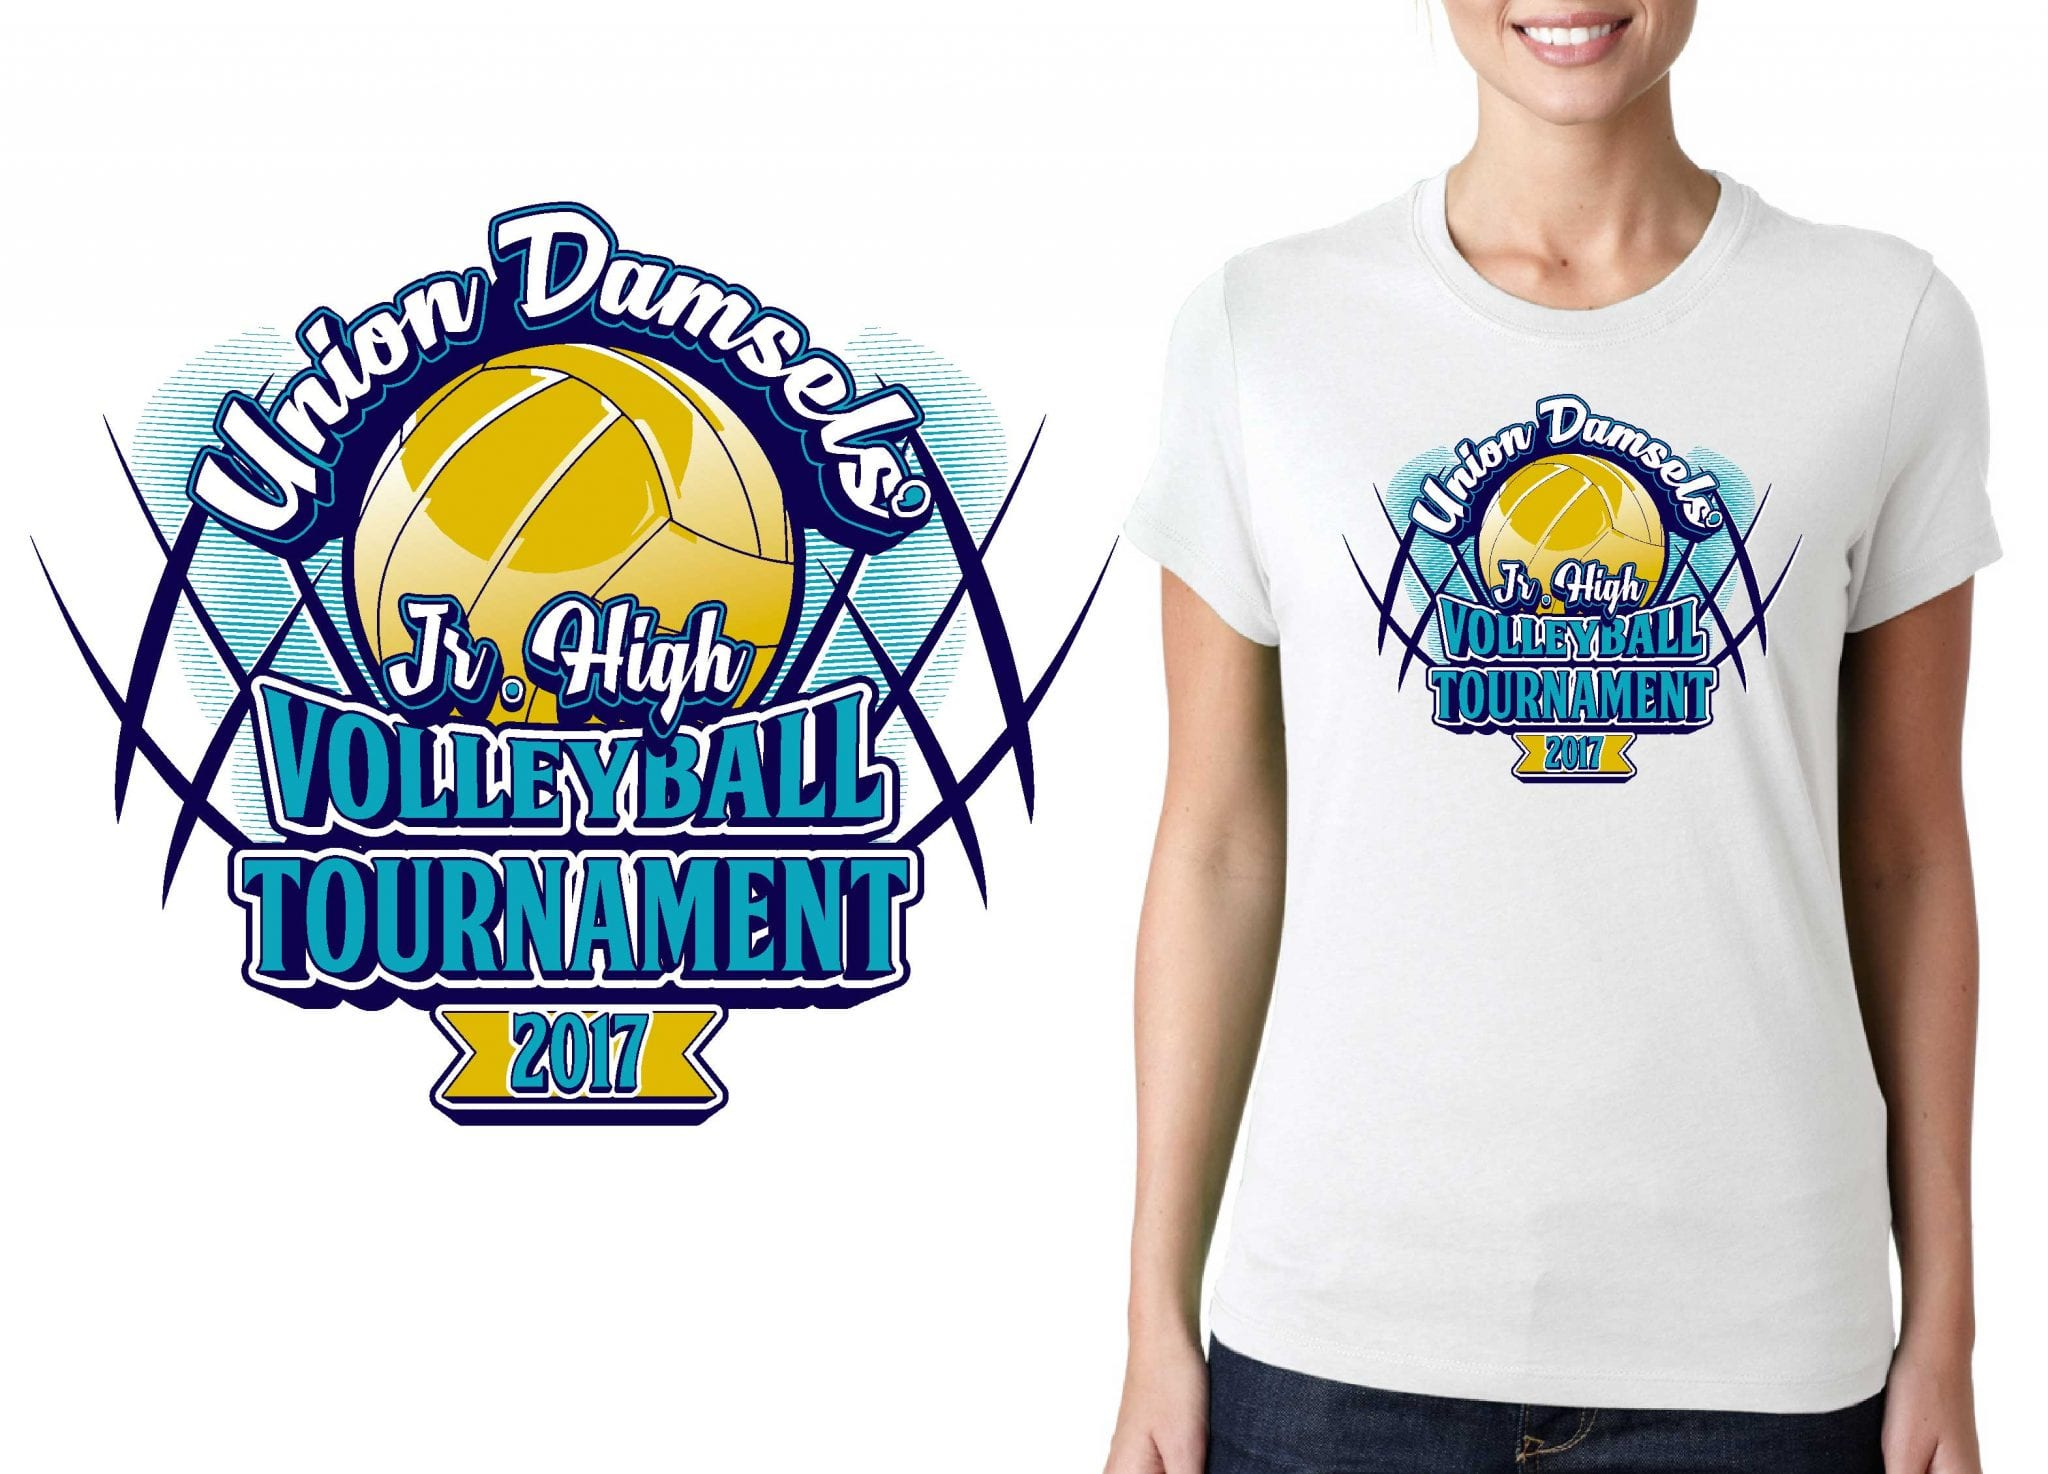 VOLLEYBALL TSHIRT LOGO DESIGN Union-School-District-Volleyball-Tournament BY UrArtStudio